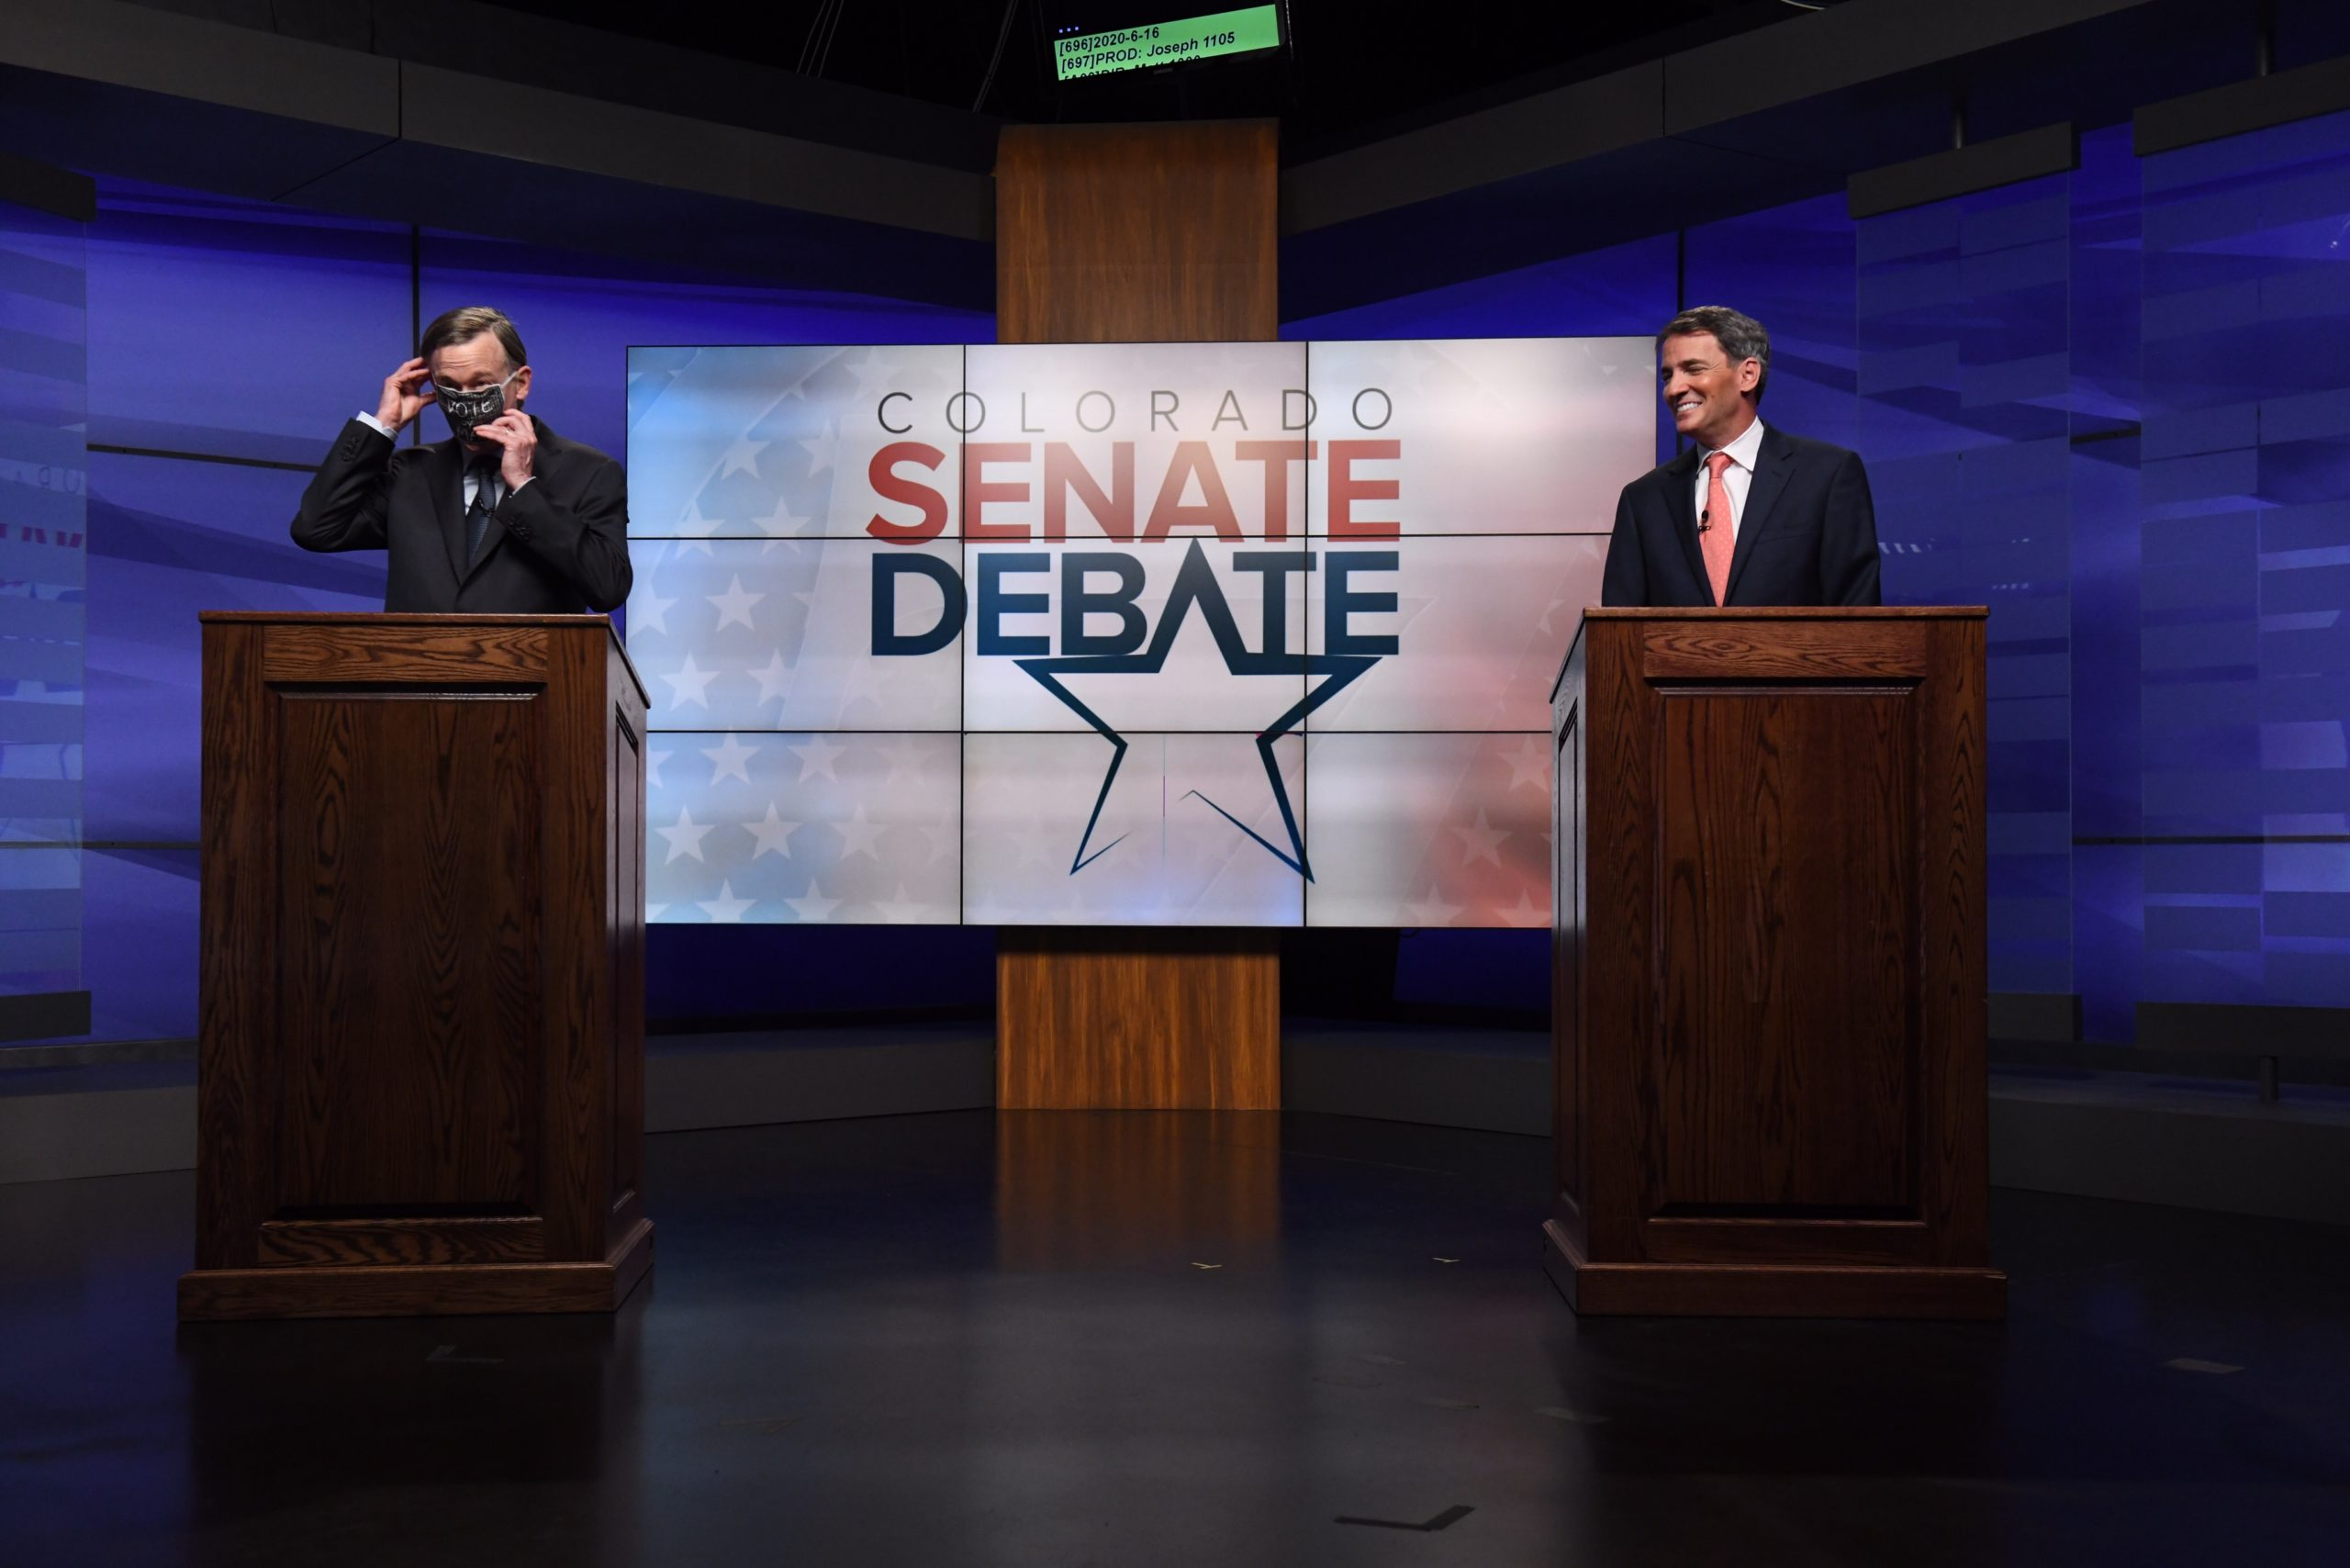 Former Colorado Gov. John Hickenlooper, left, puts on a mask after finishing a debate against former state House speaker Andrew Romanoff in the studio of Denver7 in Denver on Tuesday, June 16, 2020. The debate, held ahead of the Democratic primary, was sponsored by The Denver Post, Colorado Public Radio News, Denver7 and the University of Denver Center on American Politics. The winner of the June 30 primary will go on to face incumbent Republican Colorado Sen. Cory Gardner in November's general election.